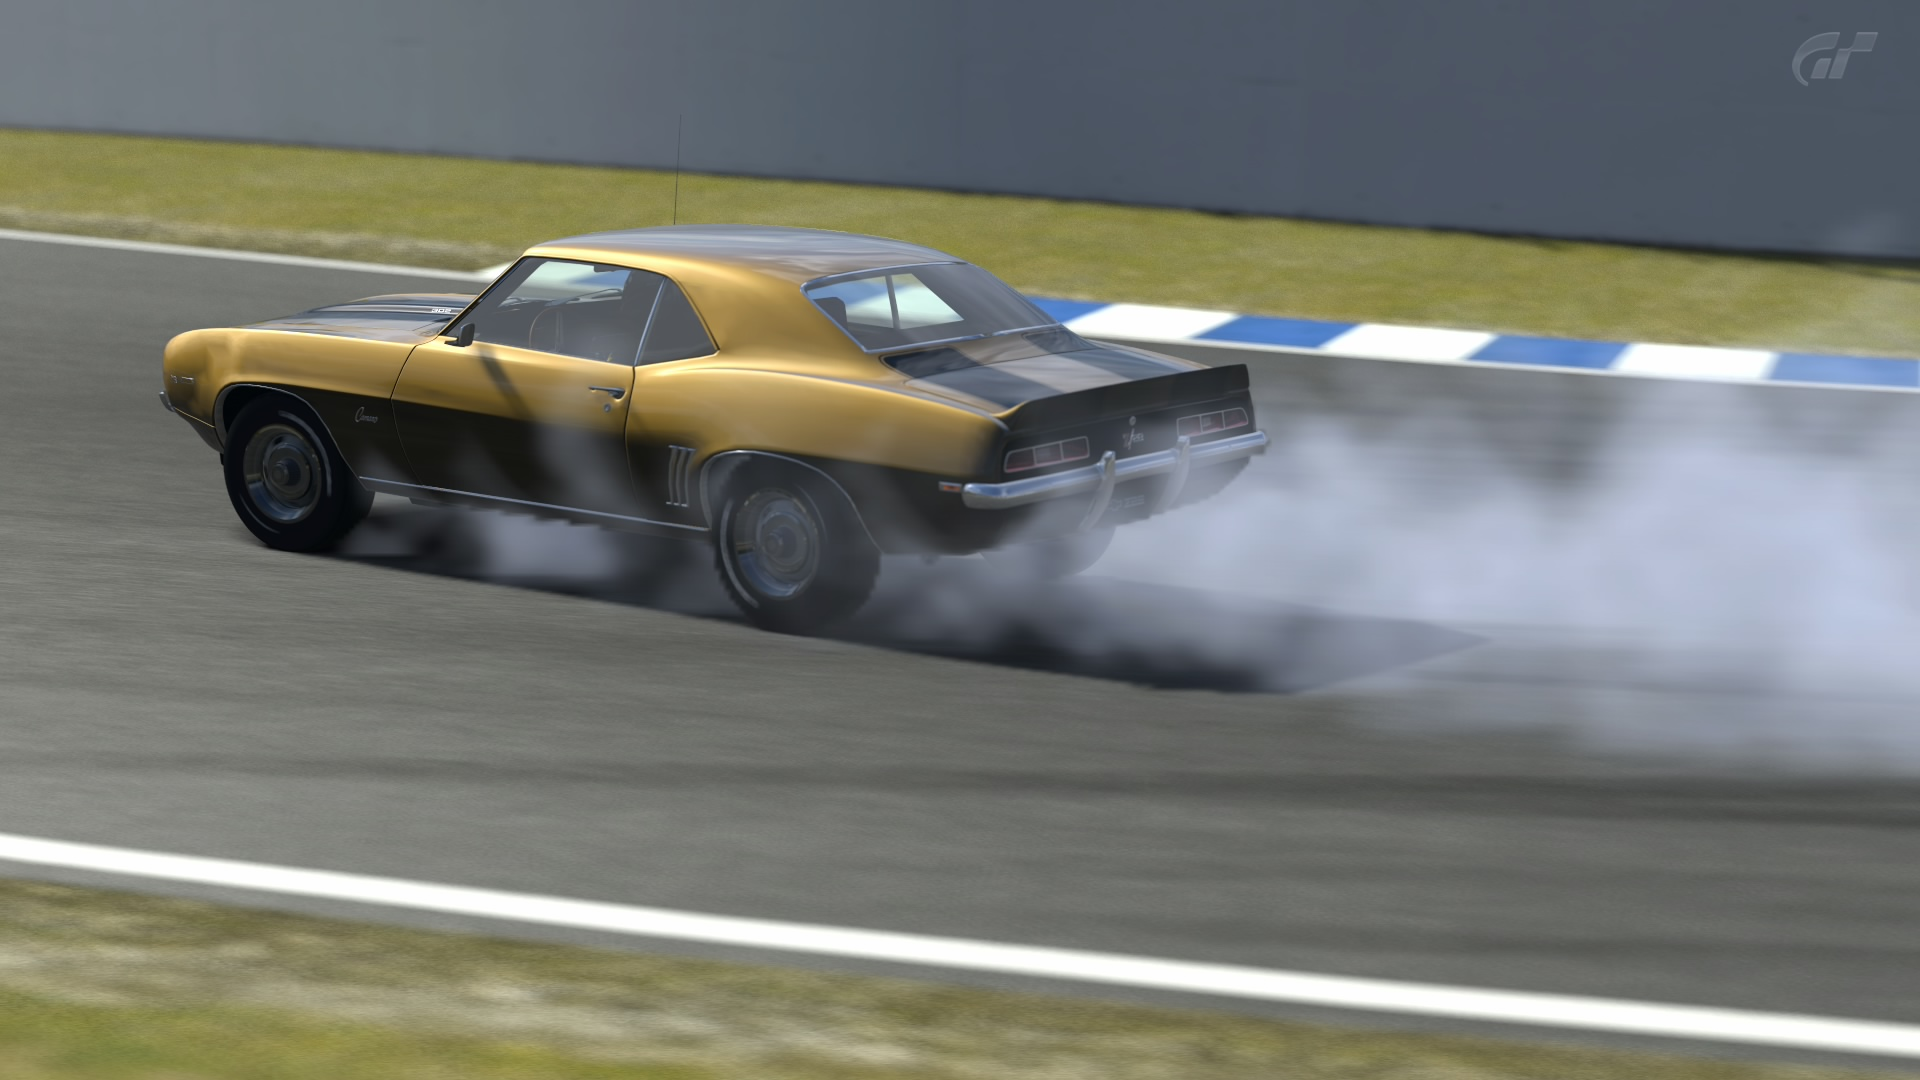 69camaro_burnout jpg